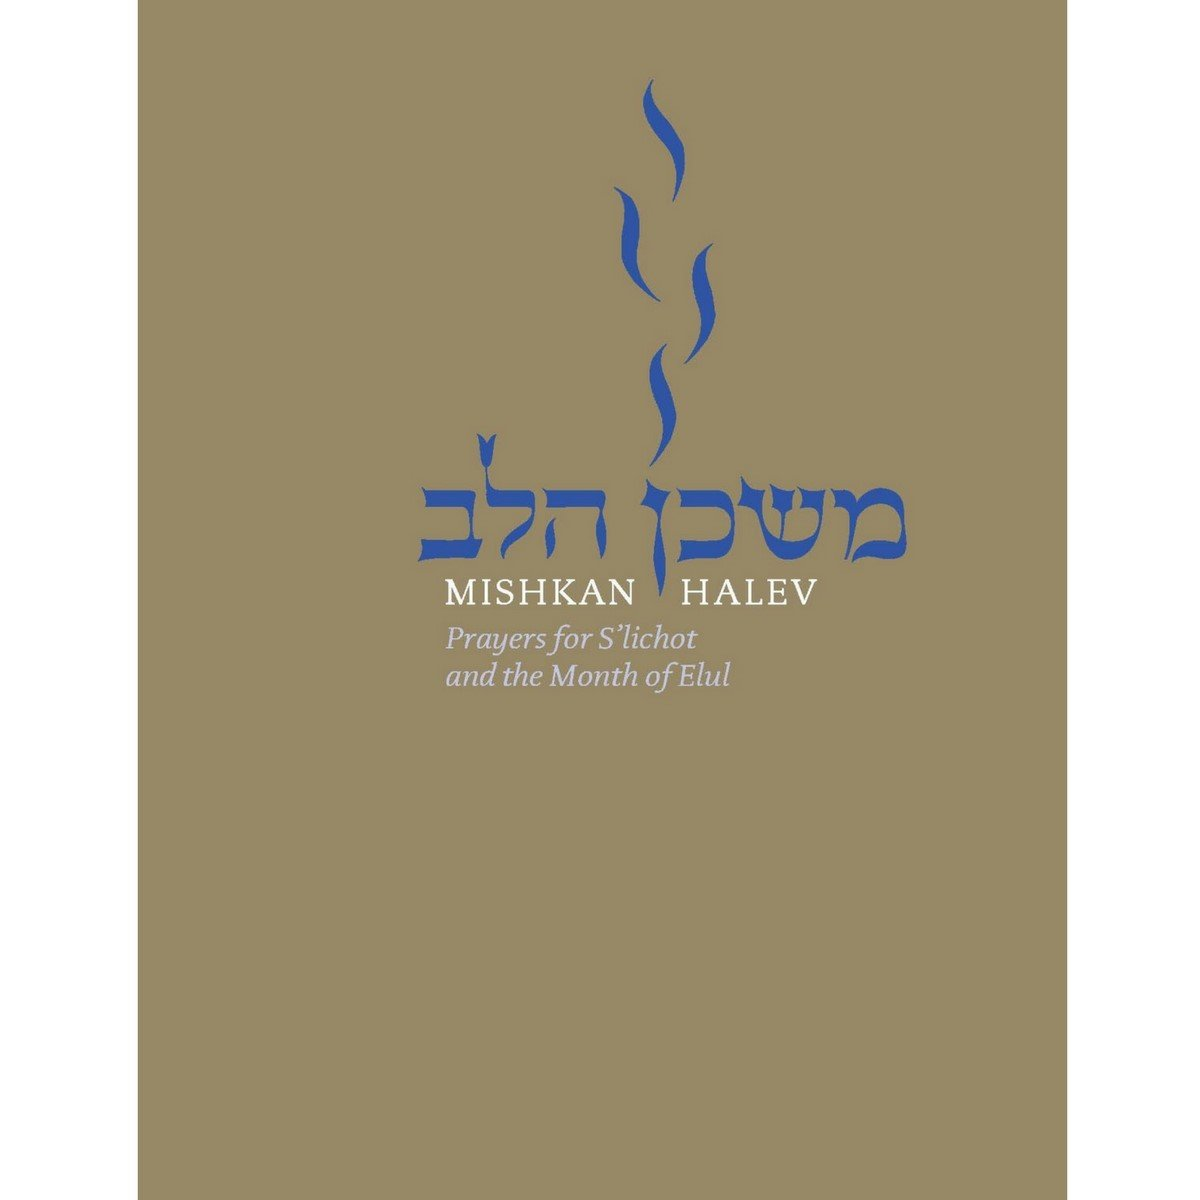 Download Mishkan HaLev: Prayers for S'lichot and the Month of Elul PDF